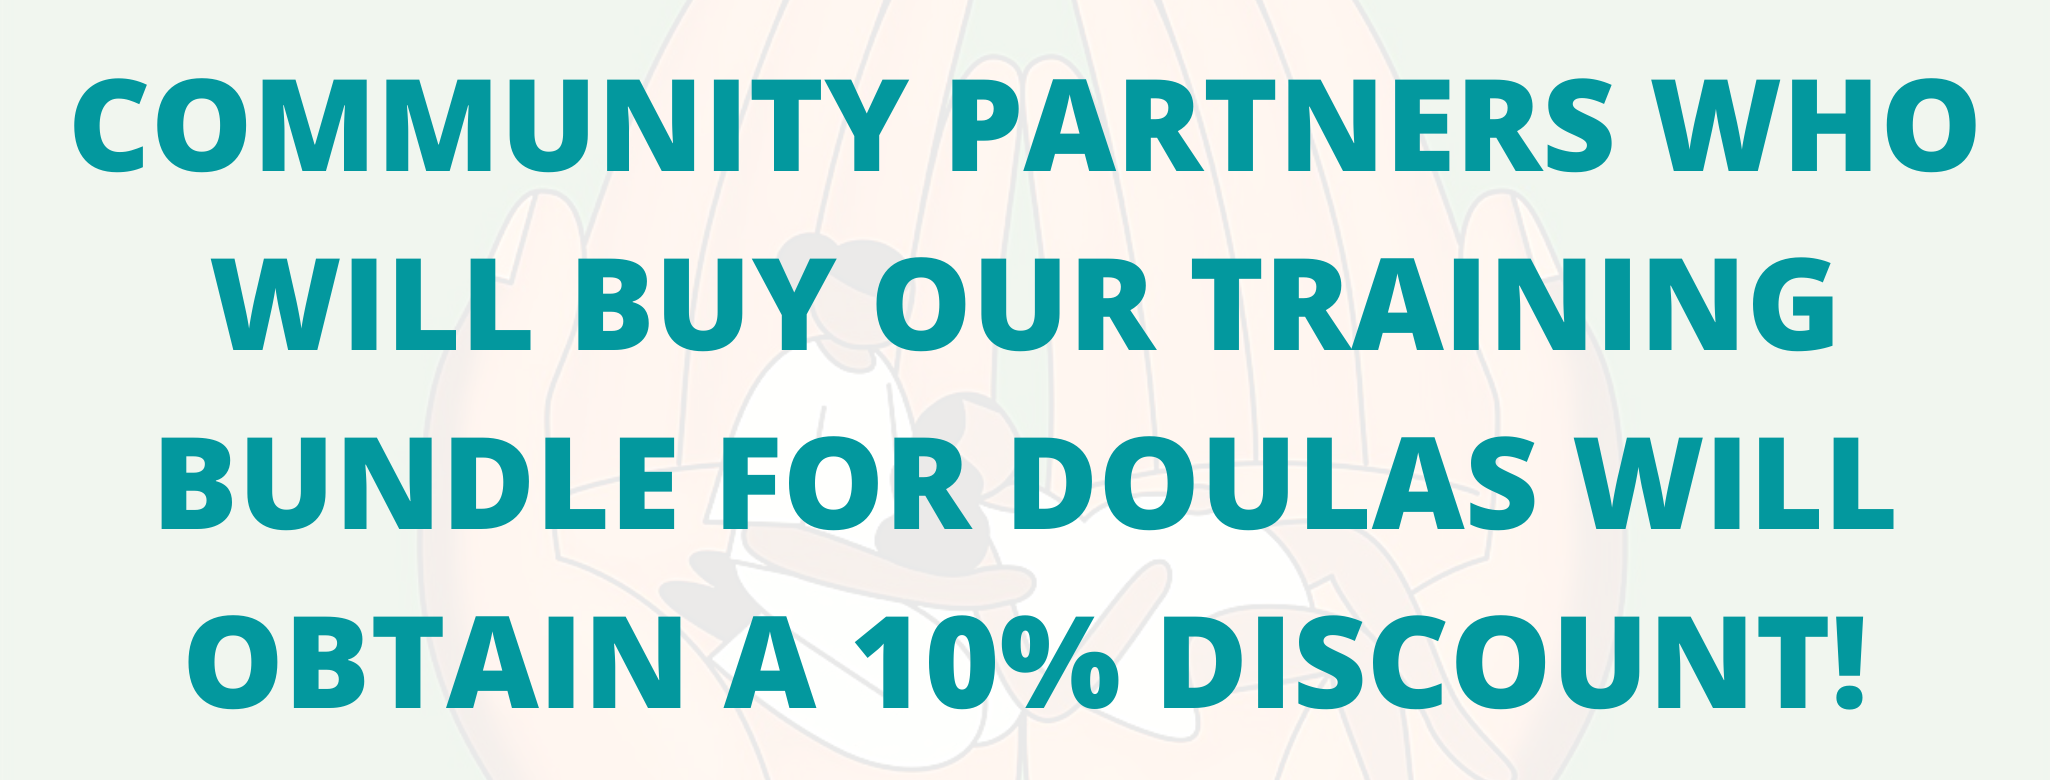 Community Partners who will purchase our Training Bundle for Doulas will obtain a 10% discount!